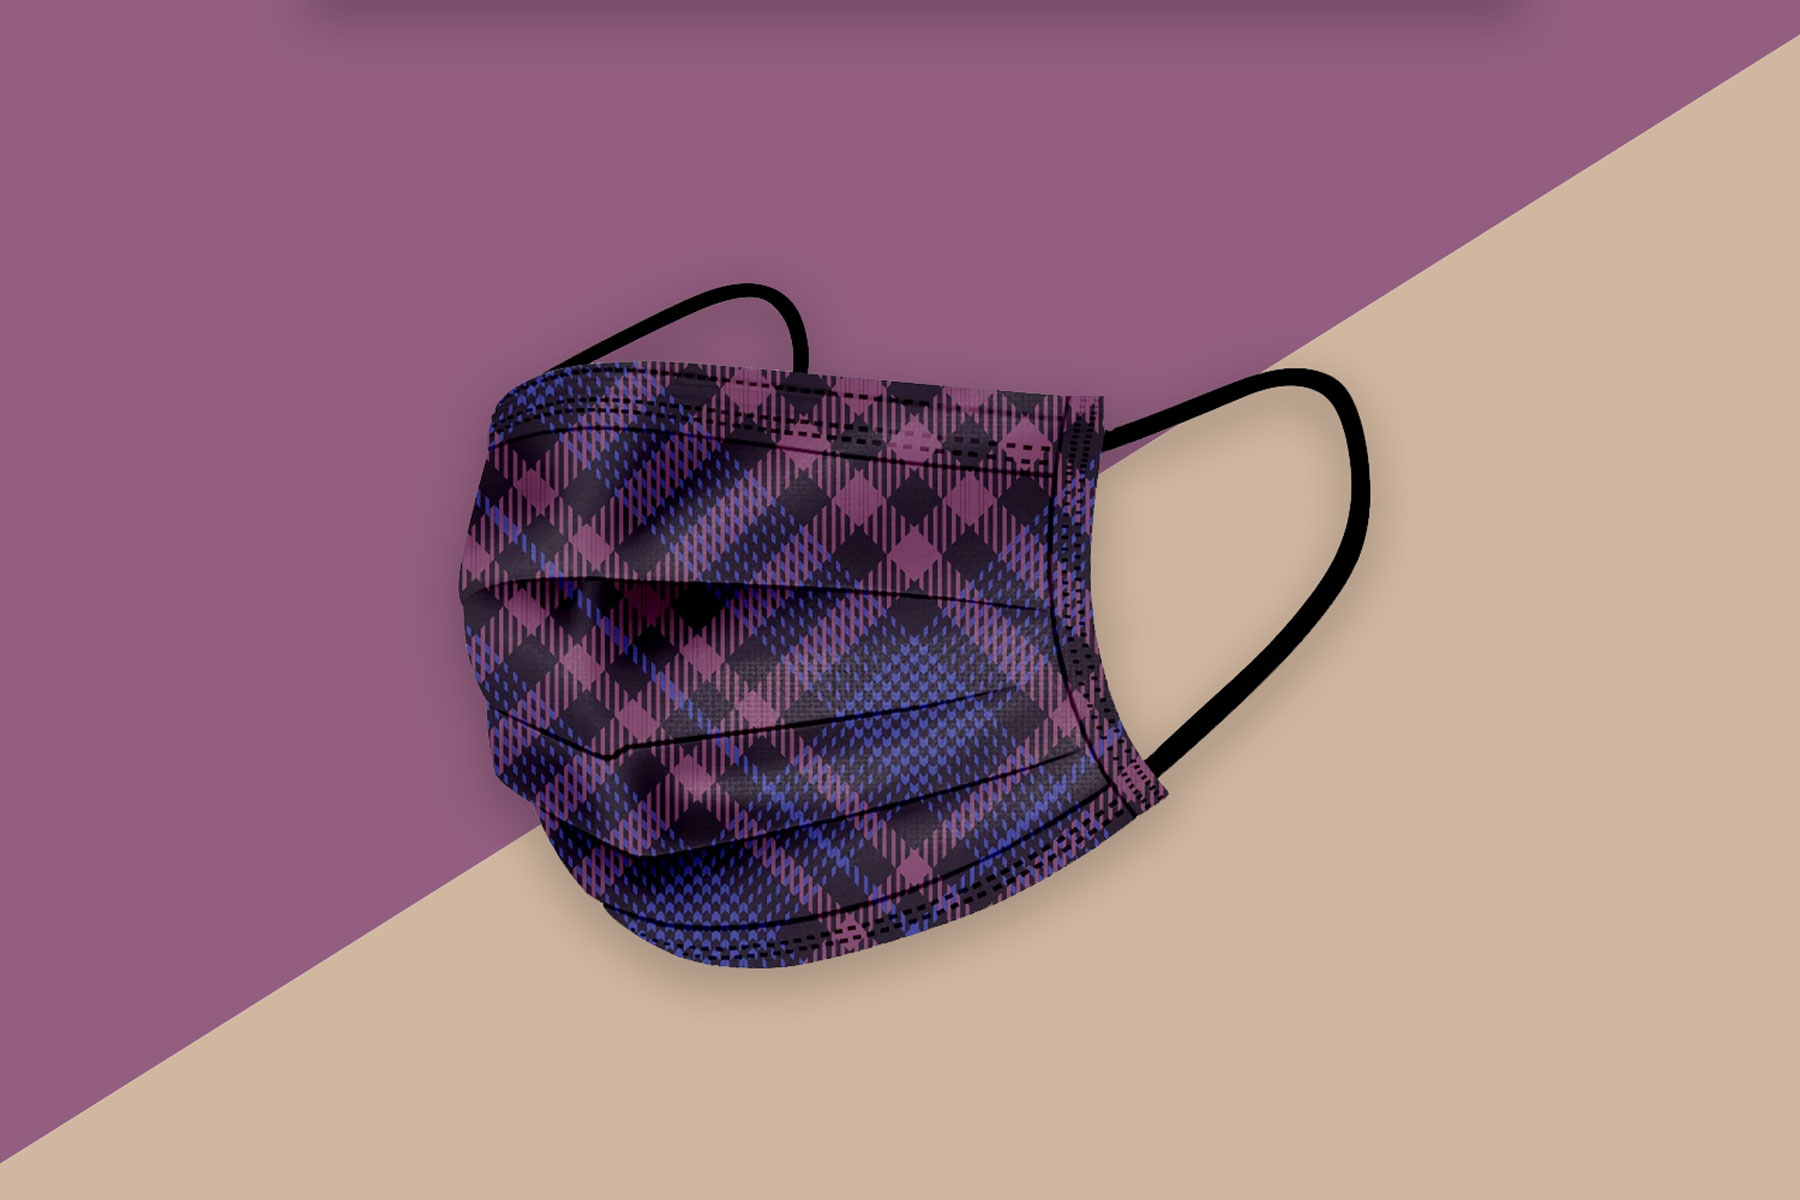 Purple and blue plaid face mask